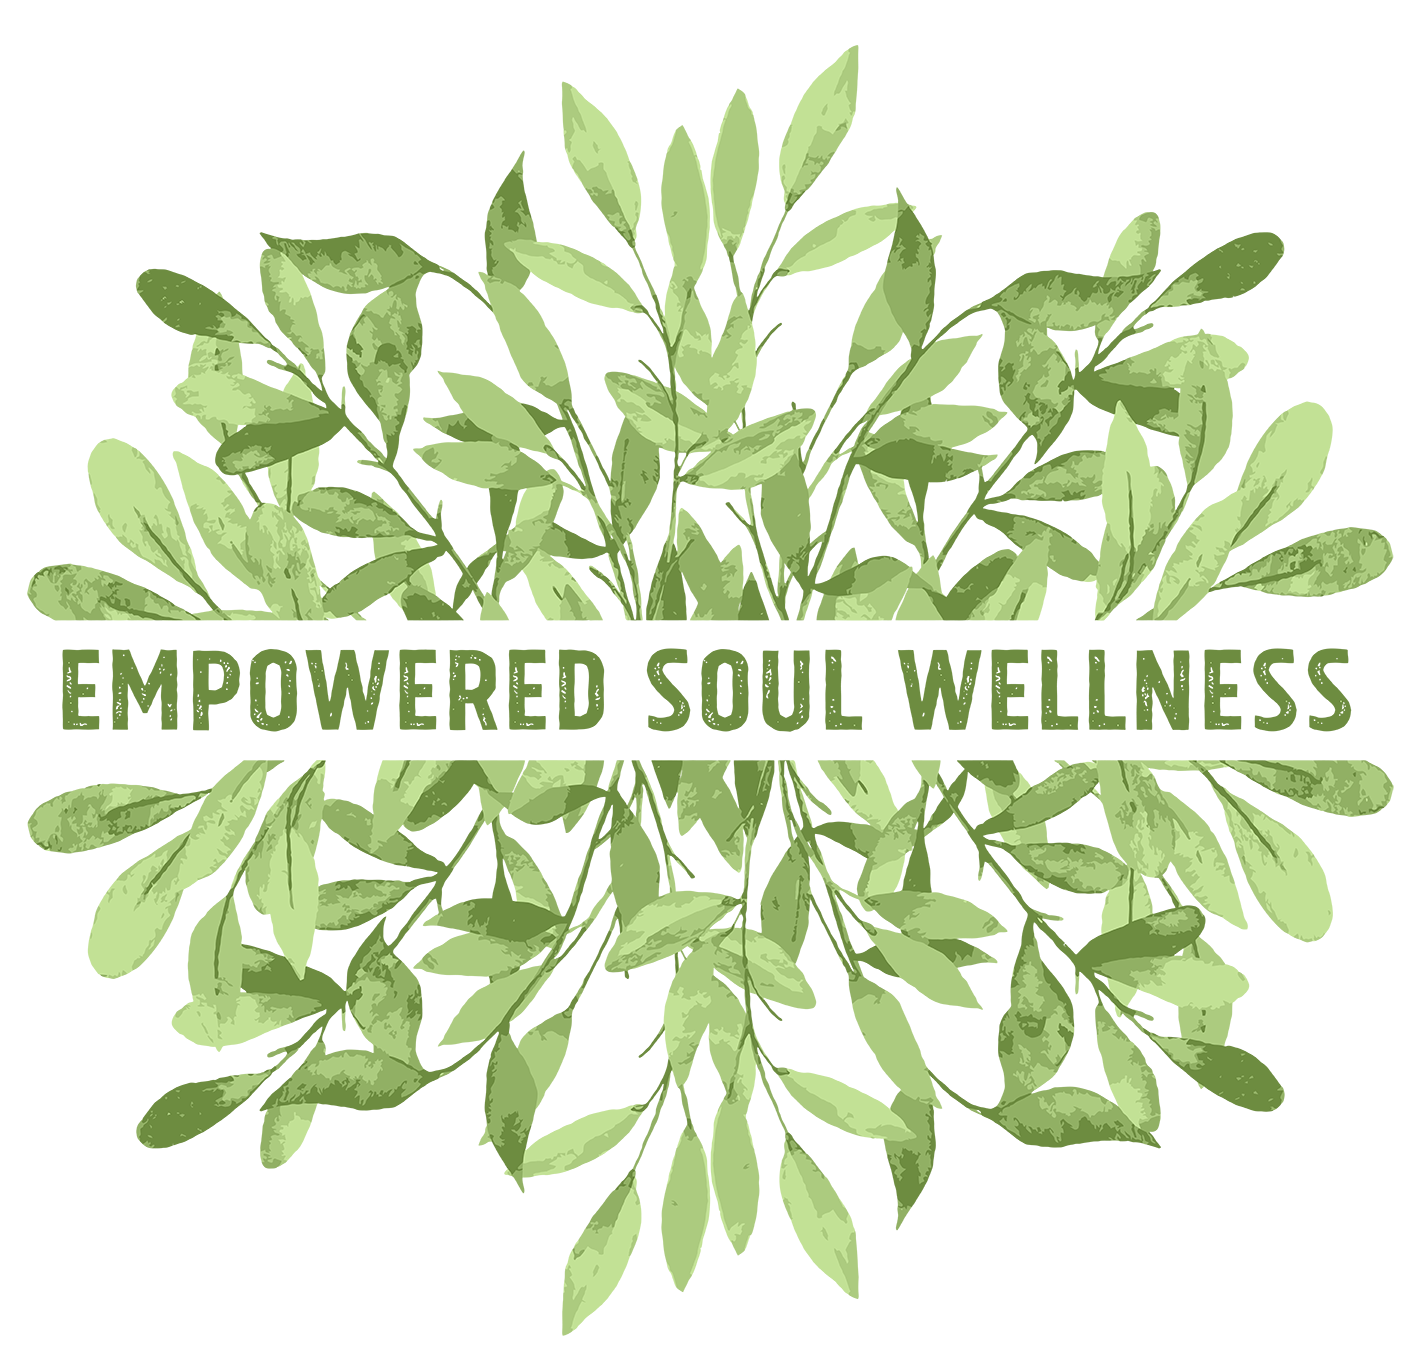 Empowered Soul Wellness